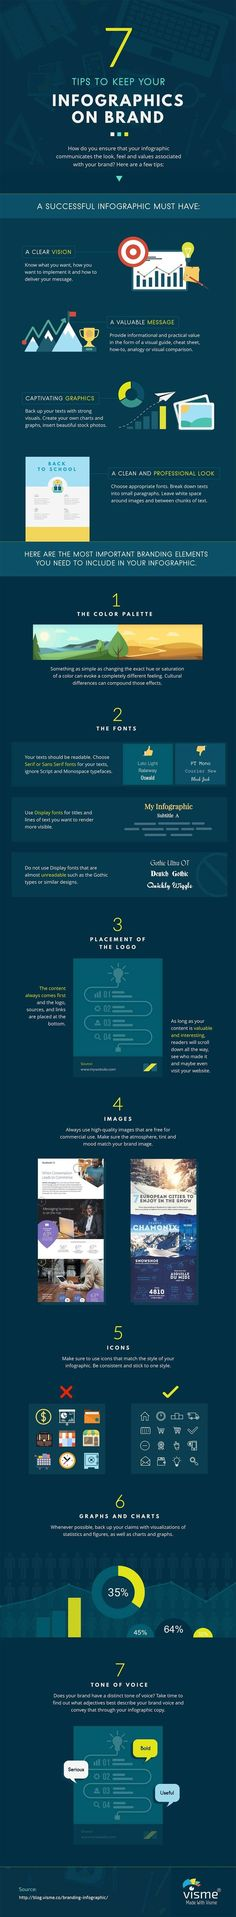 Business infographic : 7 Ways to Keep Your Infographics On Brand  #infographic